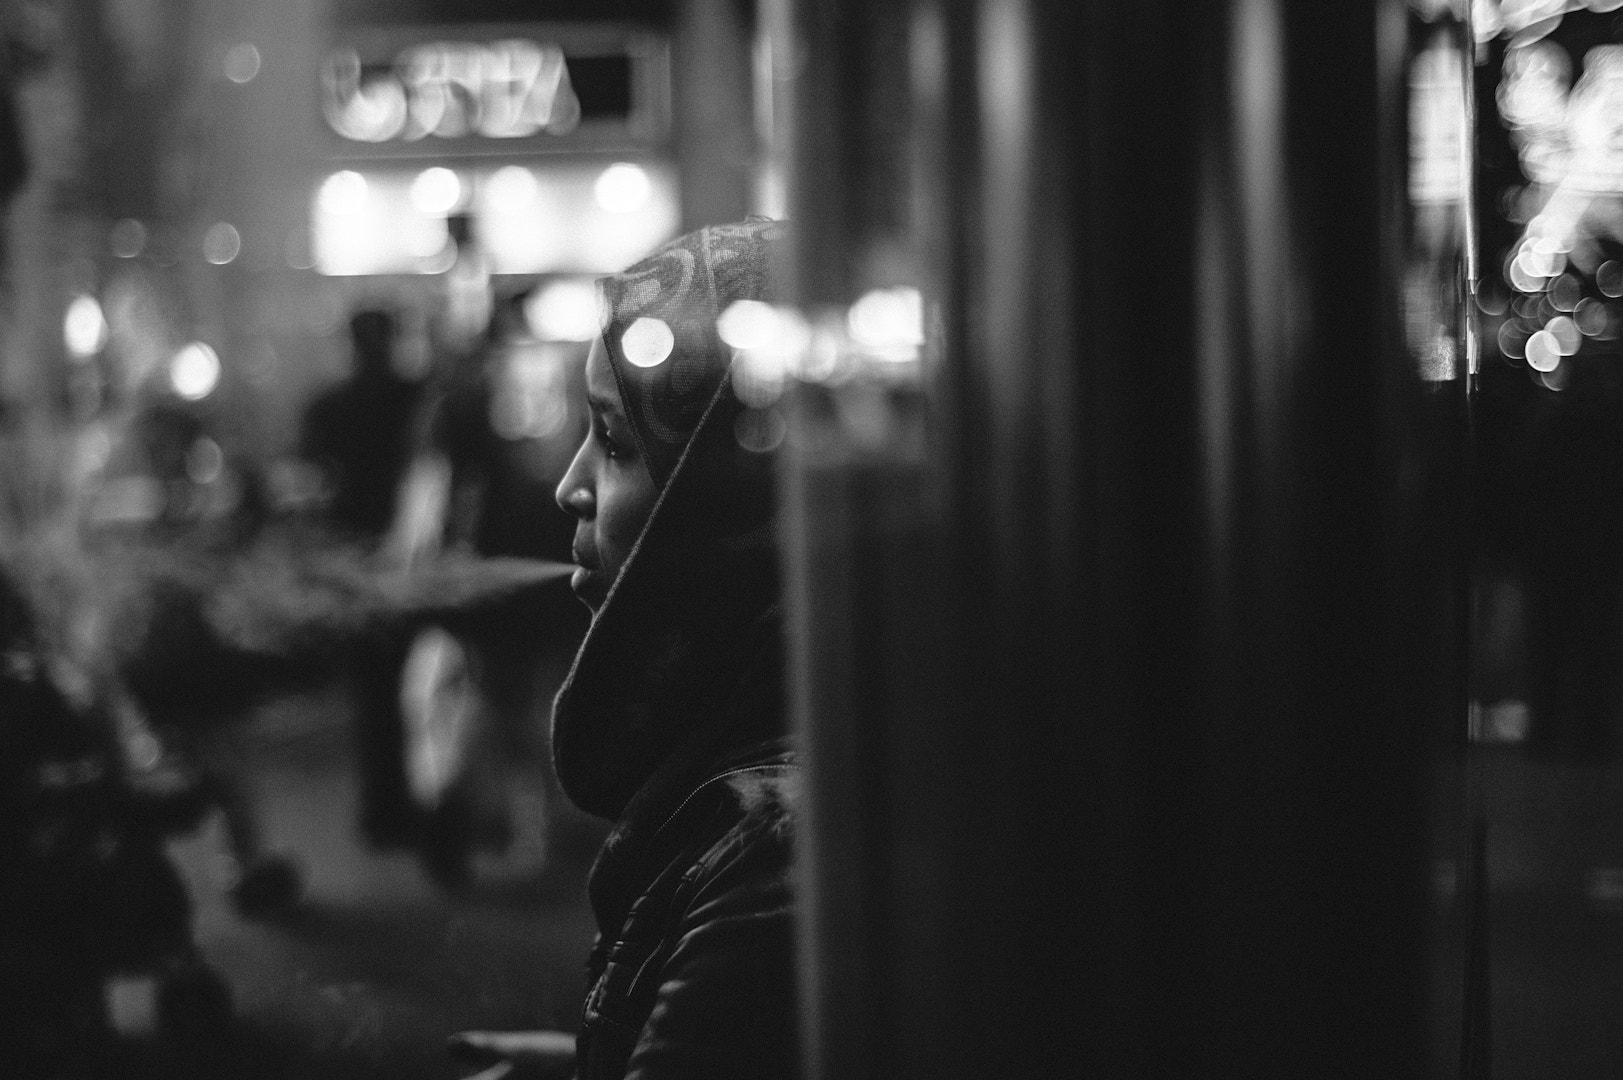 Photograph Waiting by Paul Bence on 500px